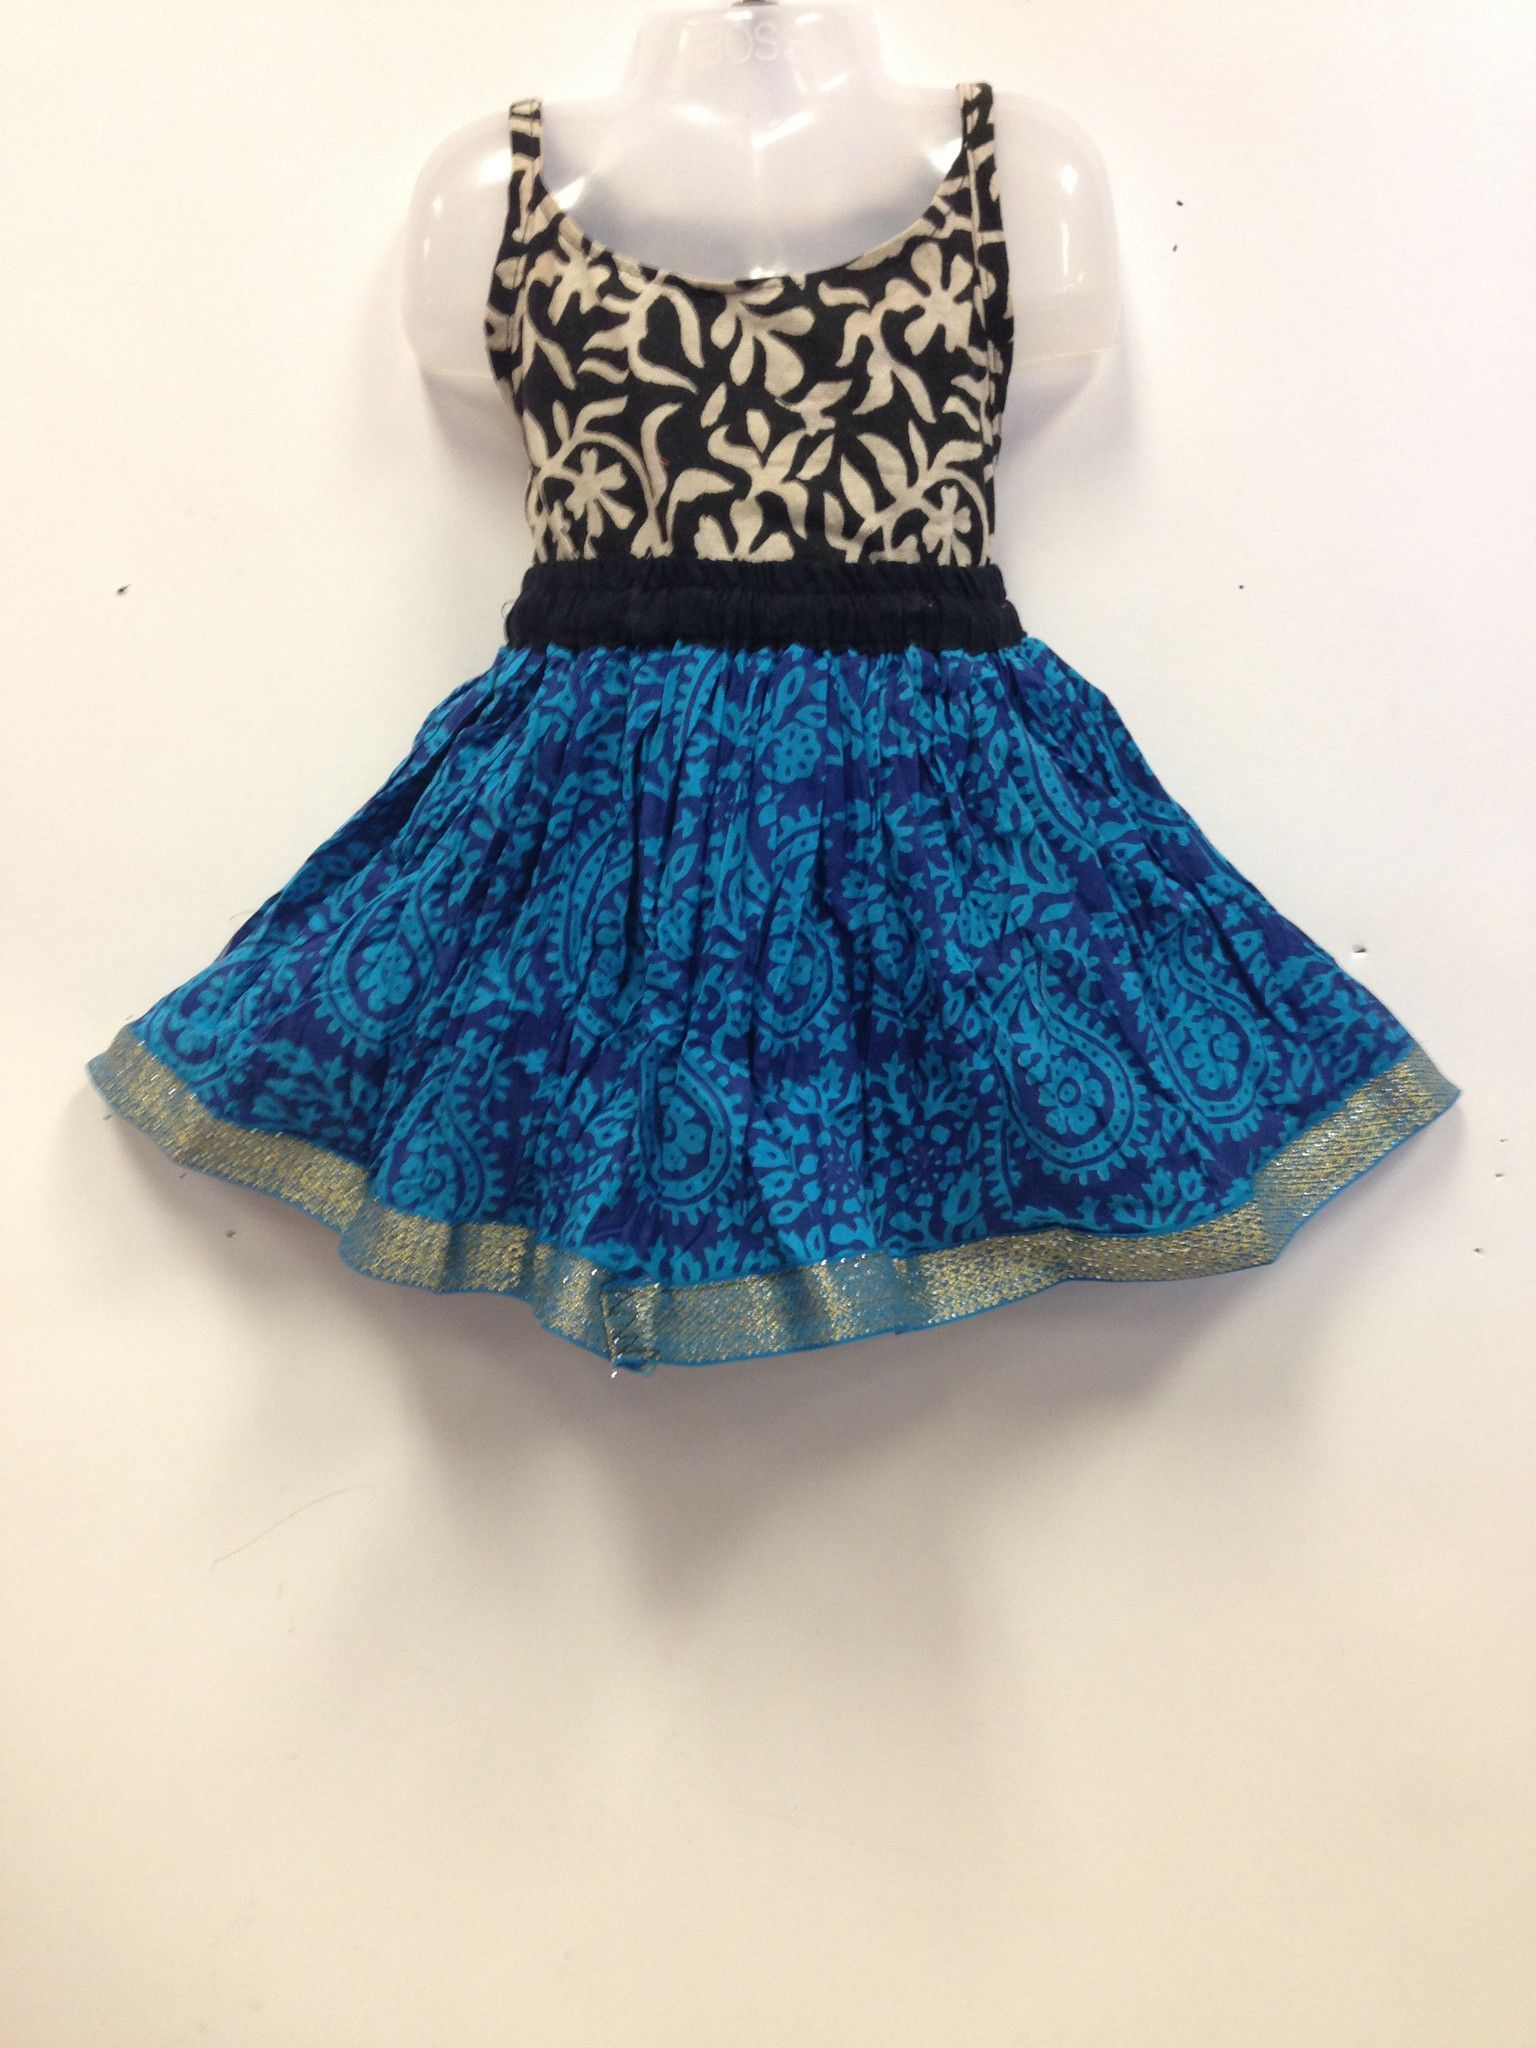 35c345d812fe Rajasthani Print Cotton Skirt and Top - Black and Blue | Lil' Ones ...